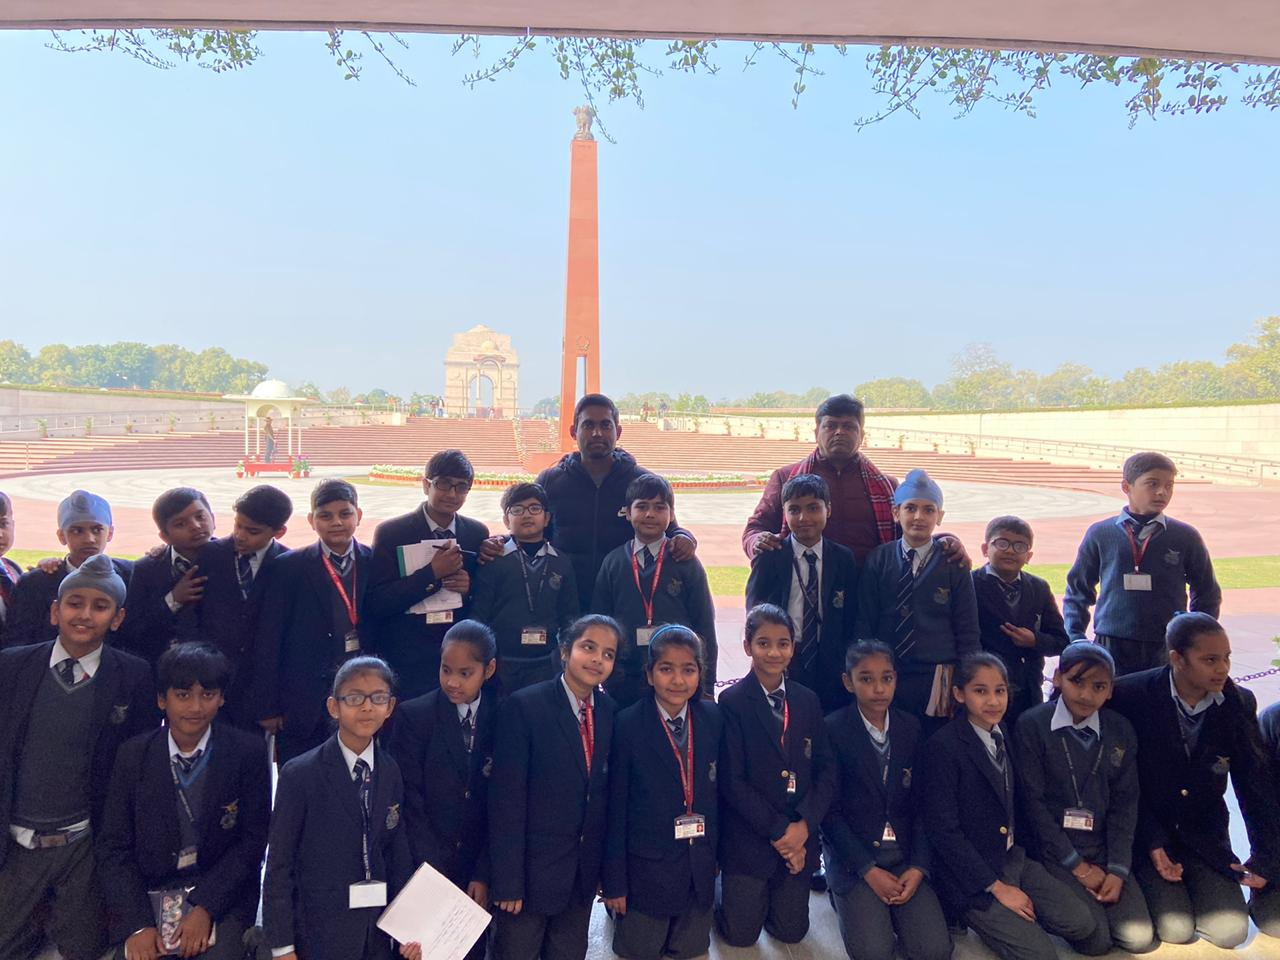 Educational visit to National War Memorial